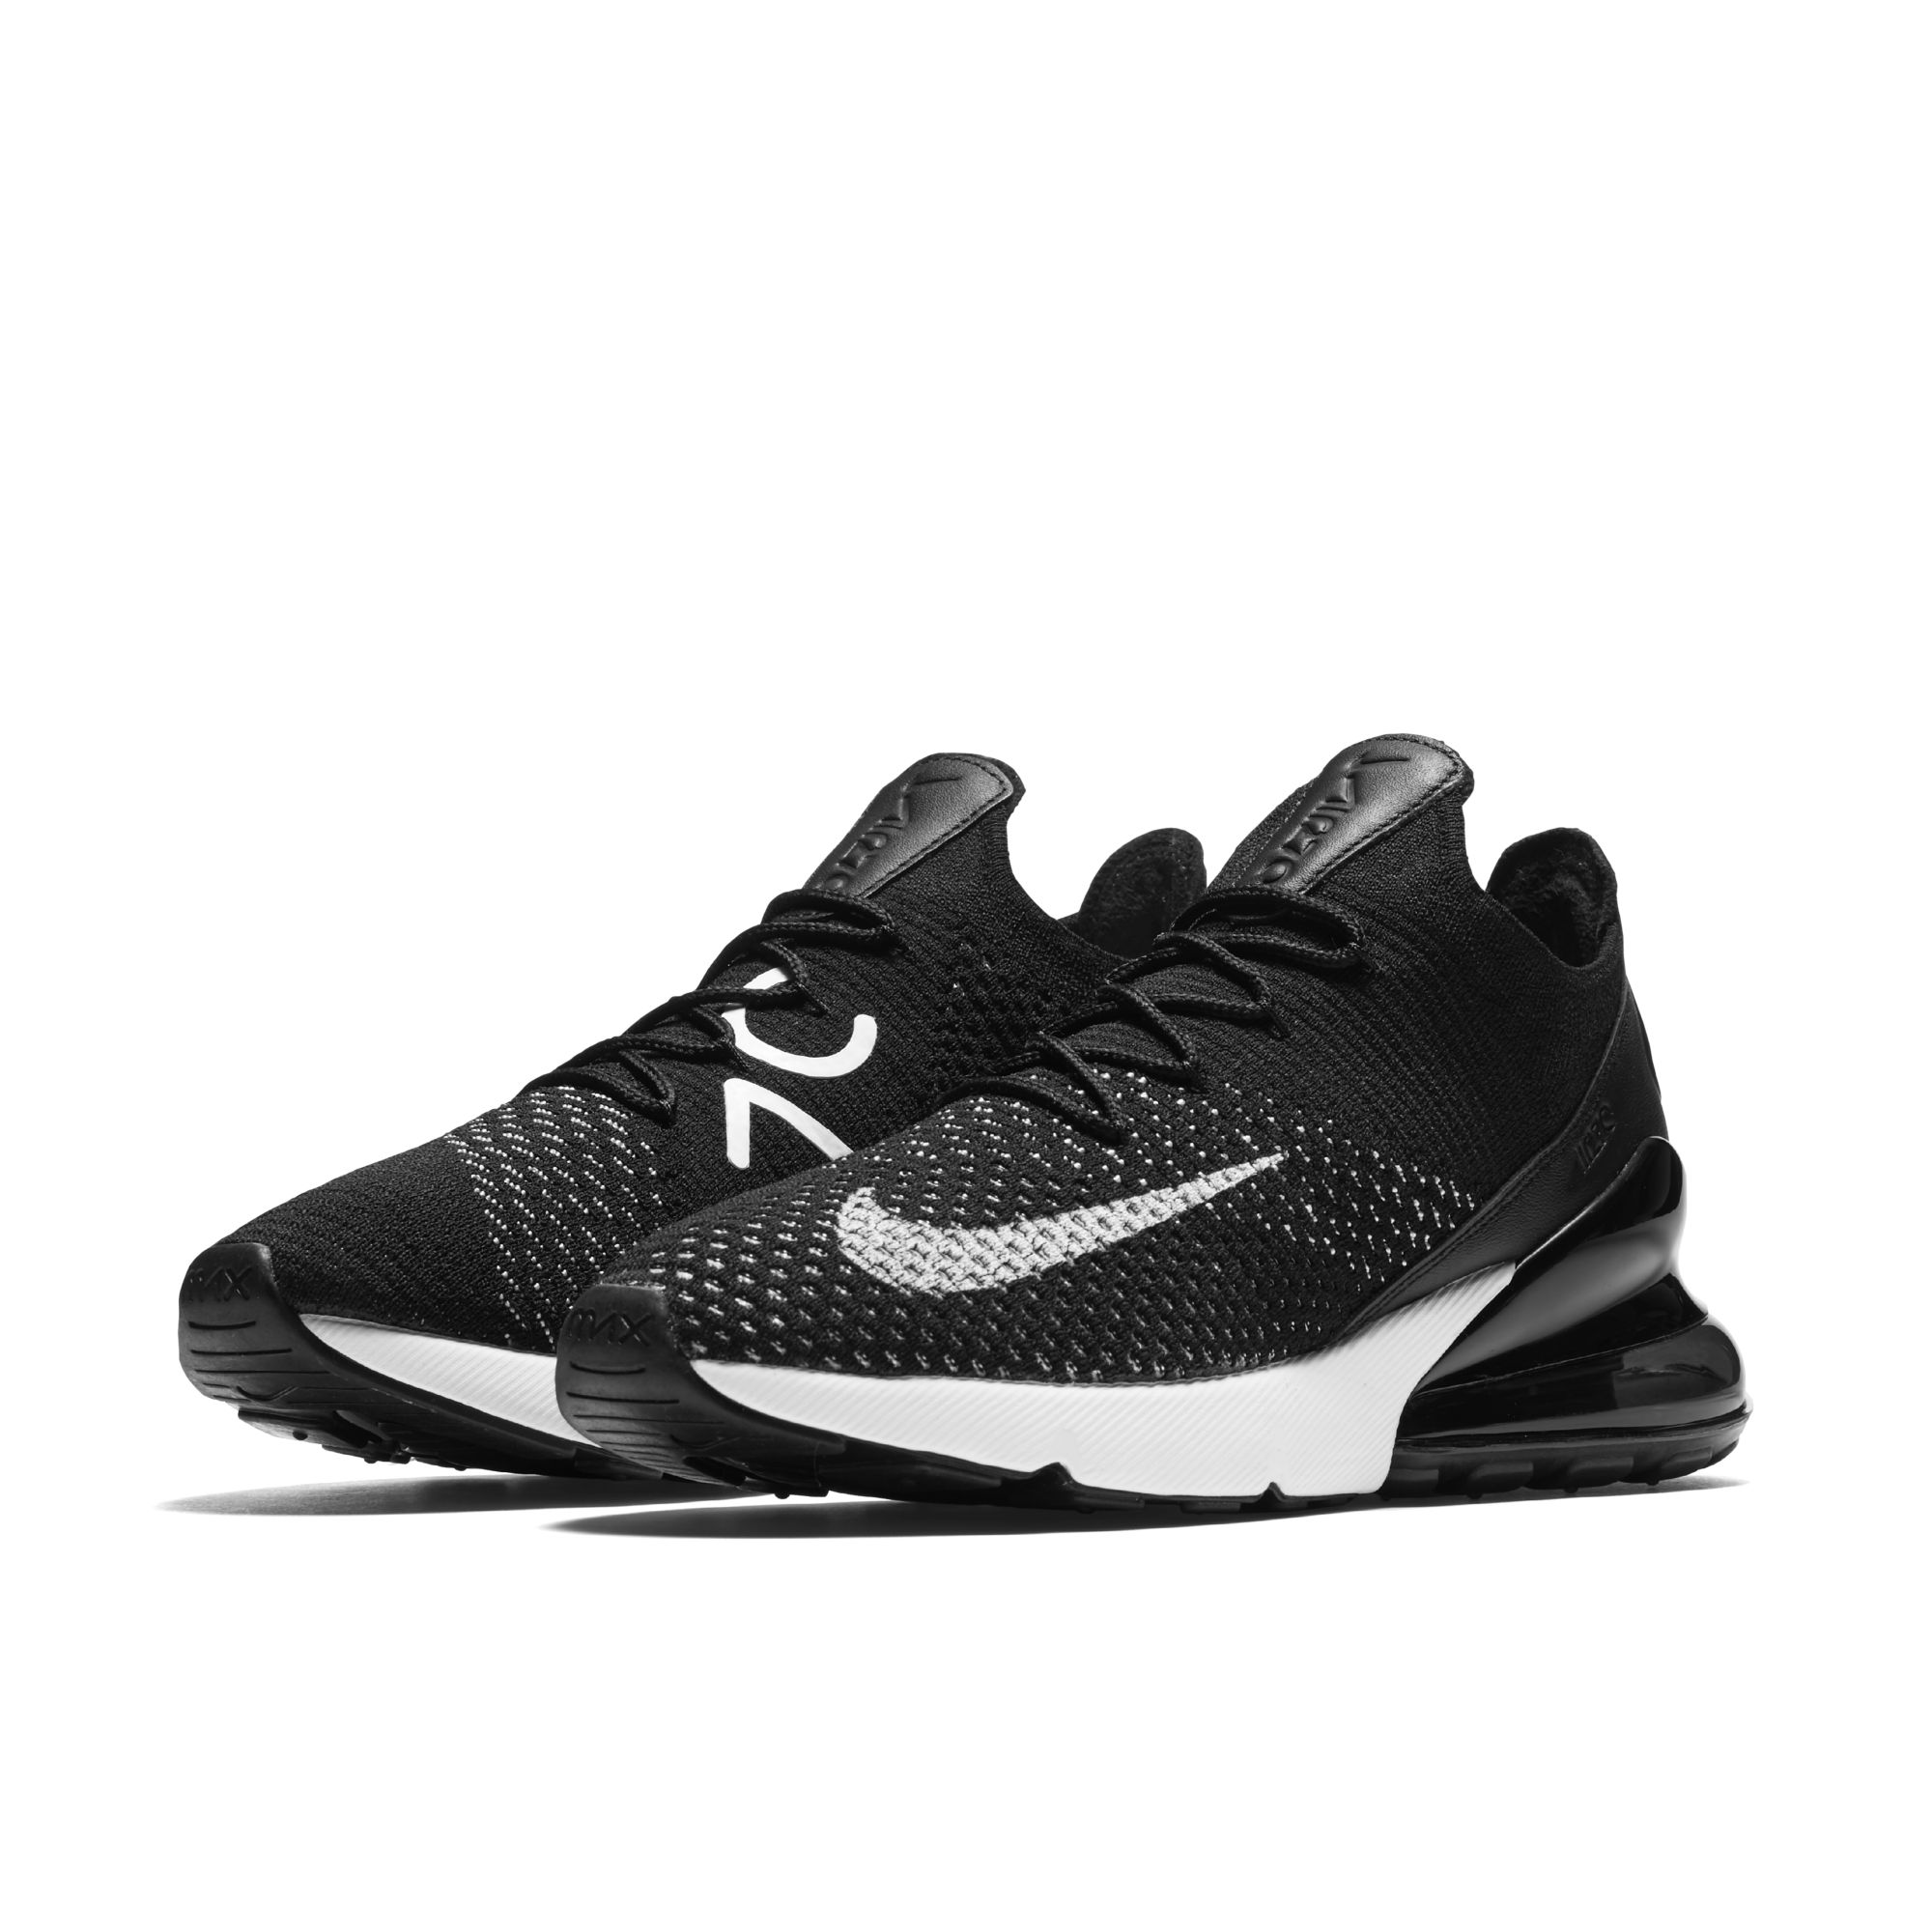 separation shoes 27981 16cd3 nike air max 270 flyknit black white womens - WearTesters